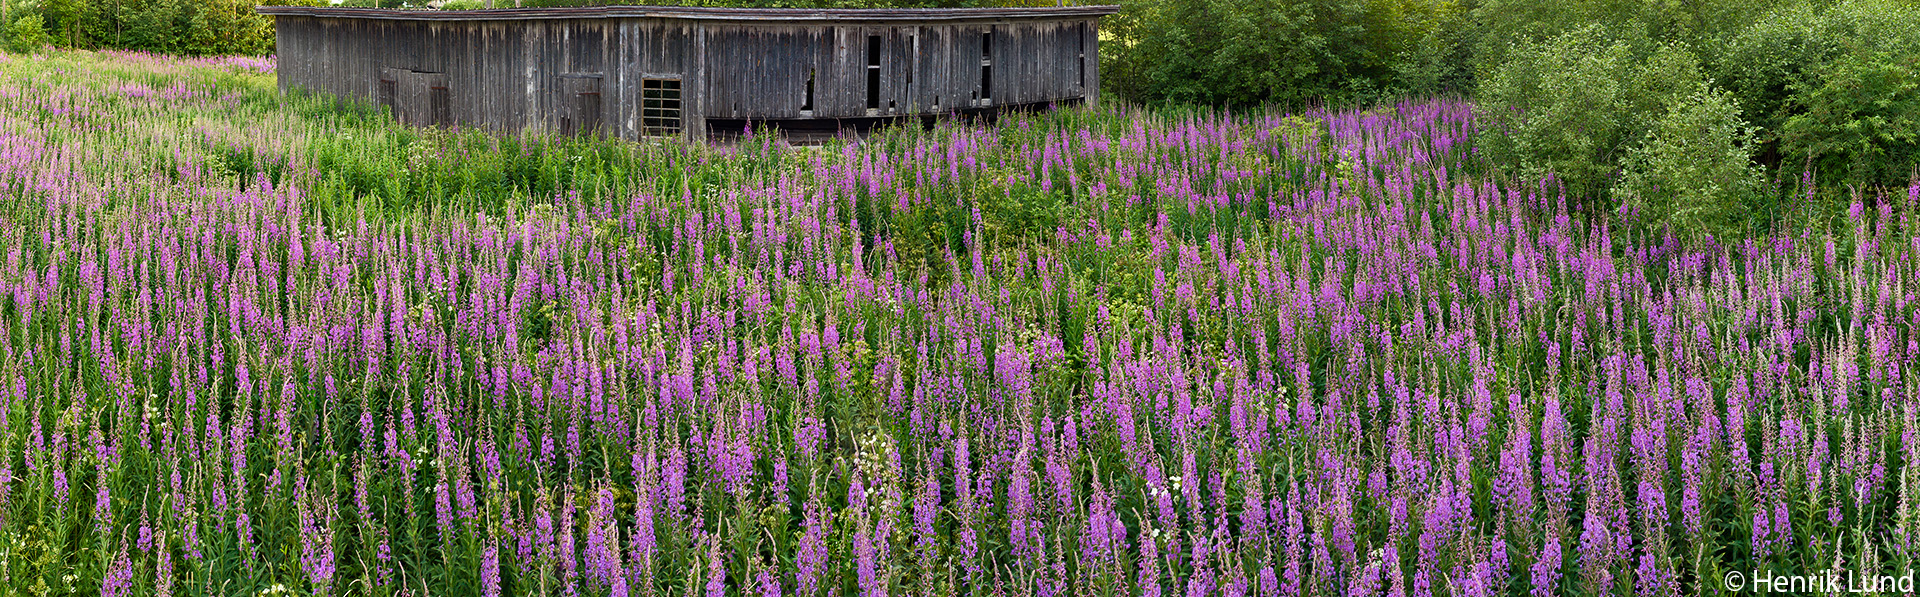 Fireweed in front of the old sawworks. Aerial panorama. Lappträsk, Finland. June 2018.